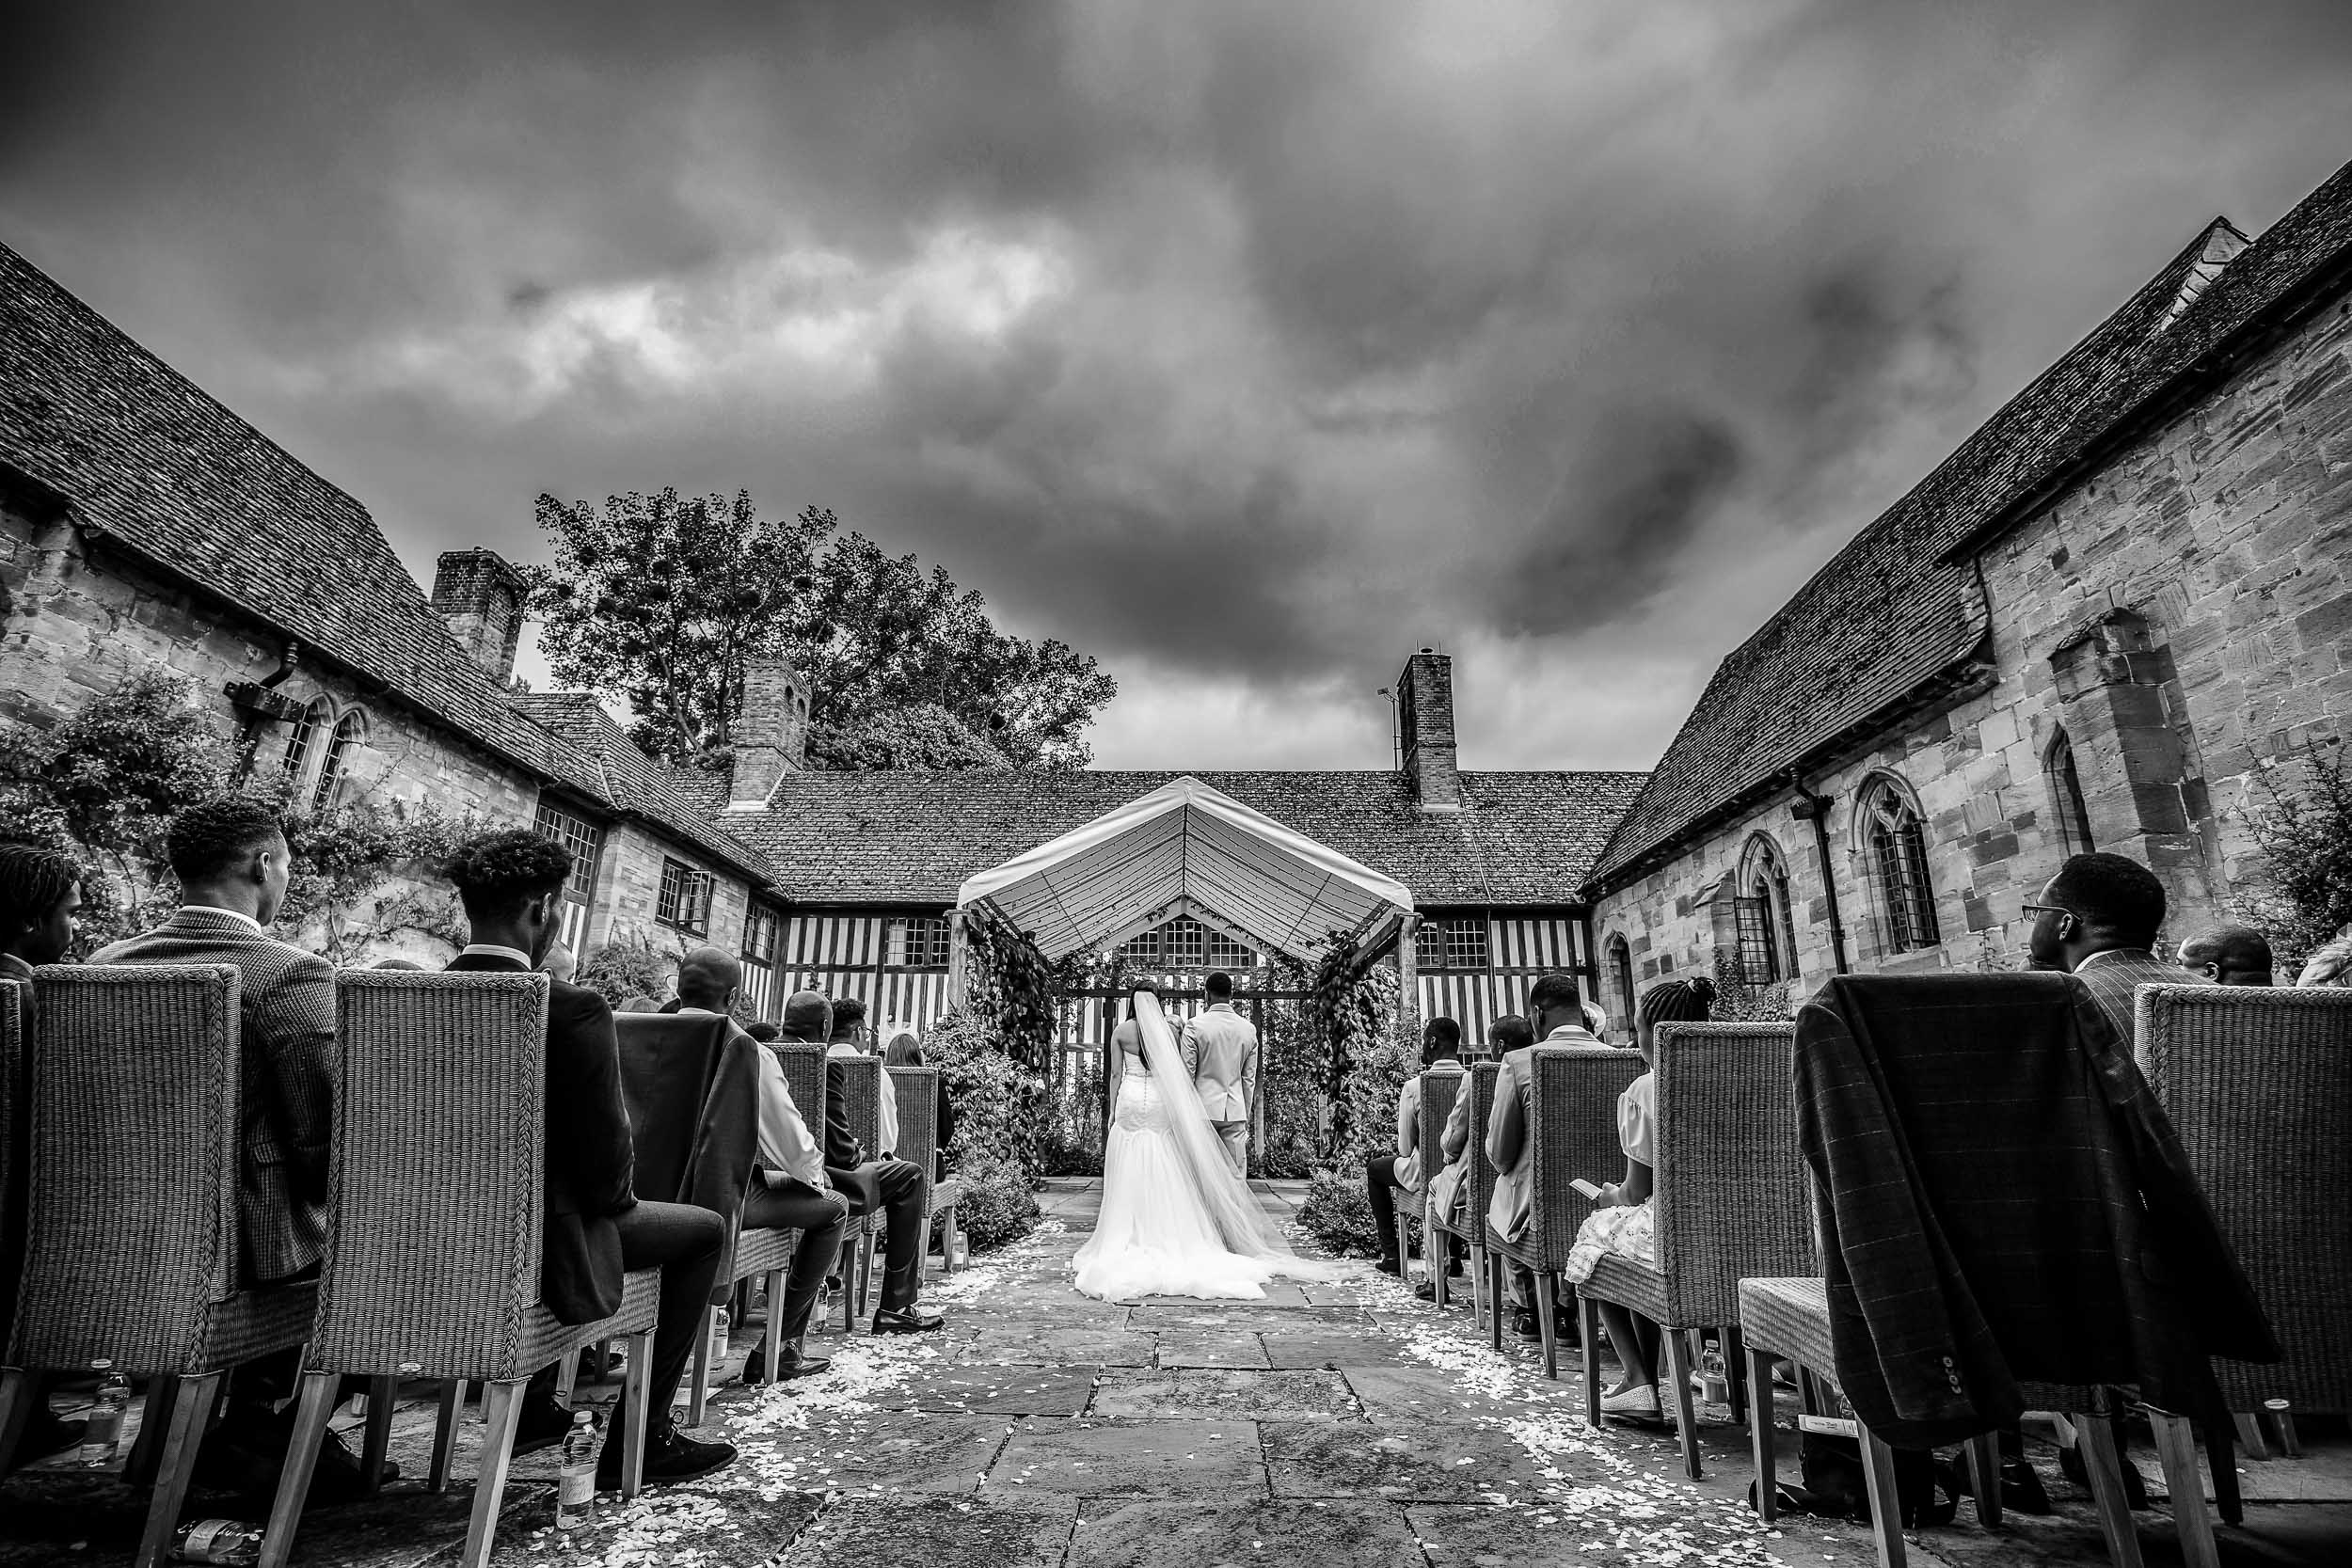 Brinsop Court wedding photography, Brinsop, Court, Herefordshire, wedding, photography, Photographer,